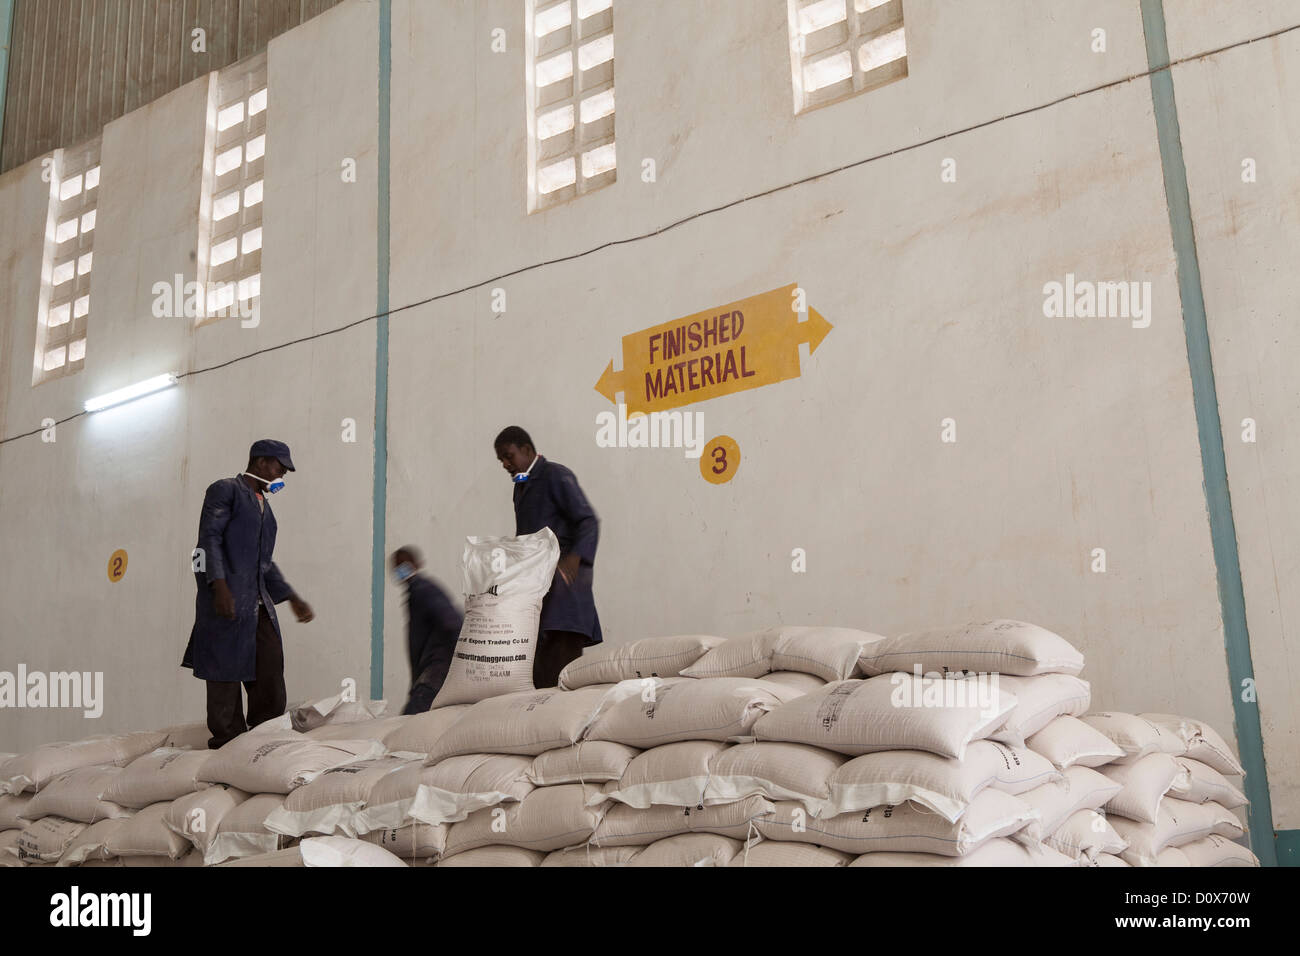 Workers stack bags of lentils (pulses) at a commodities warehouse in Dodoma, Tanzania, East Africa. - Stock Image